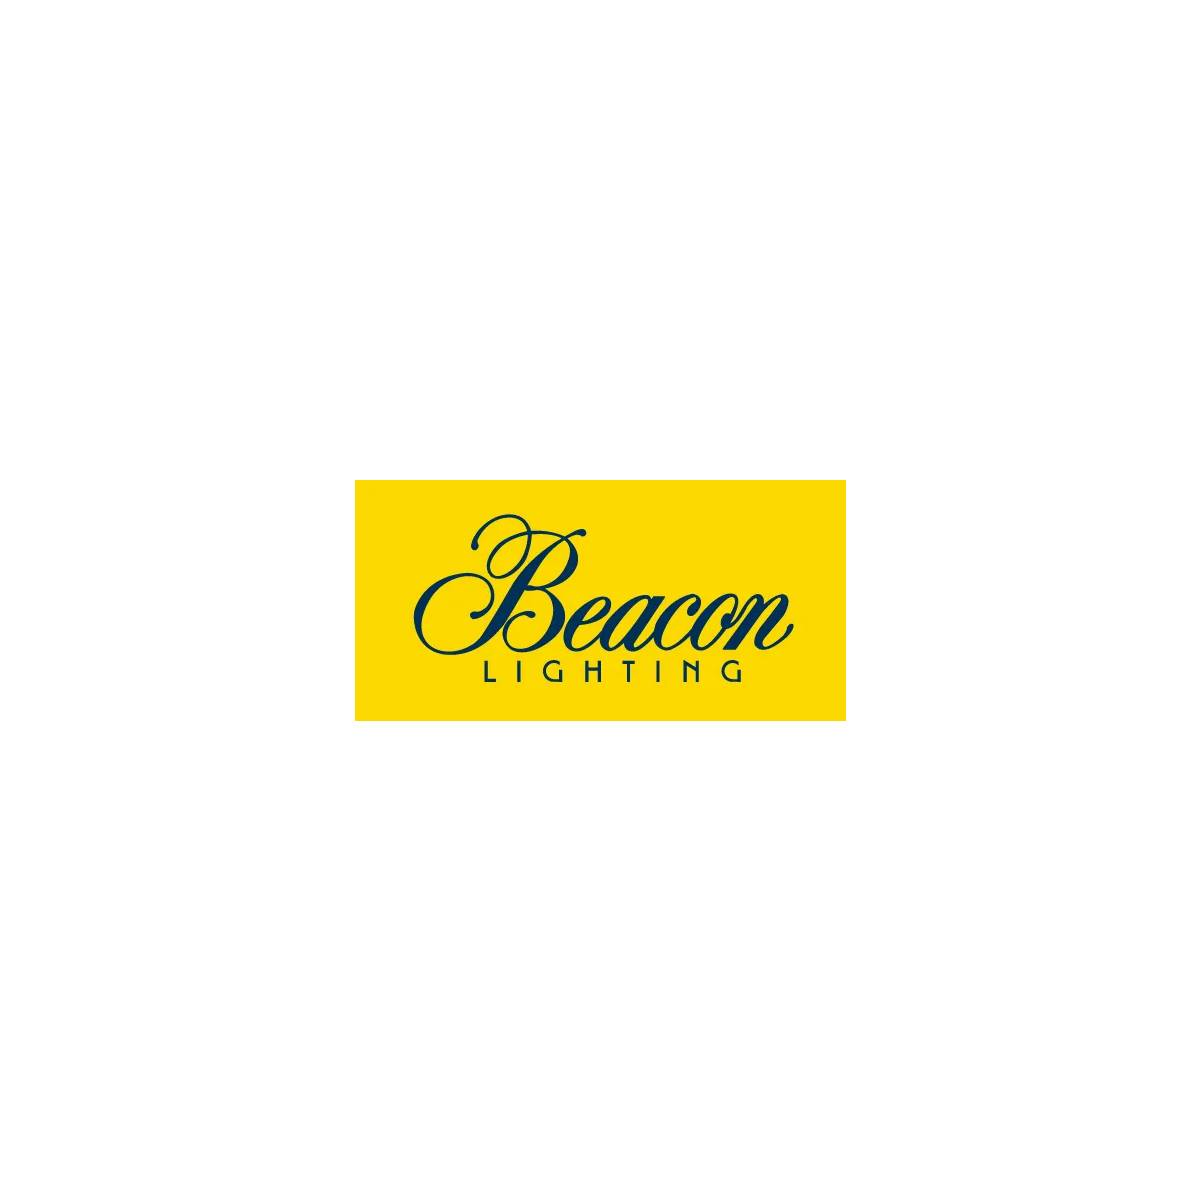 Beacon Lighting Gift Card